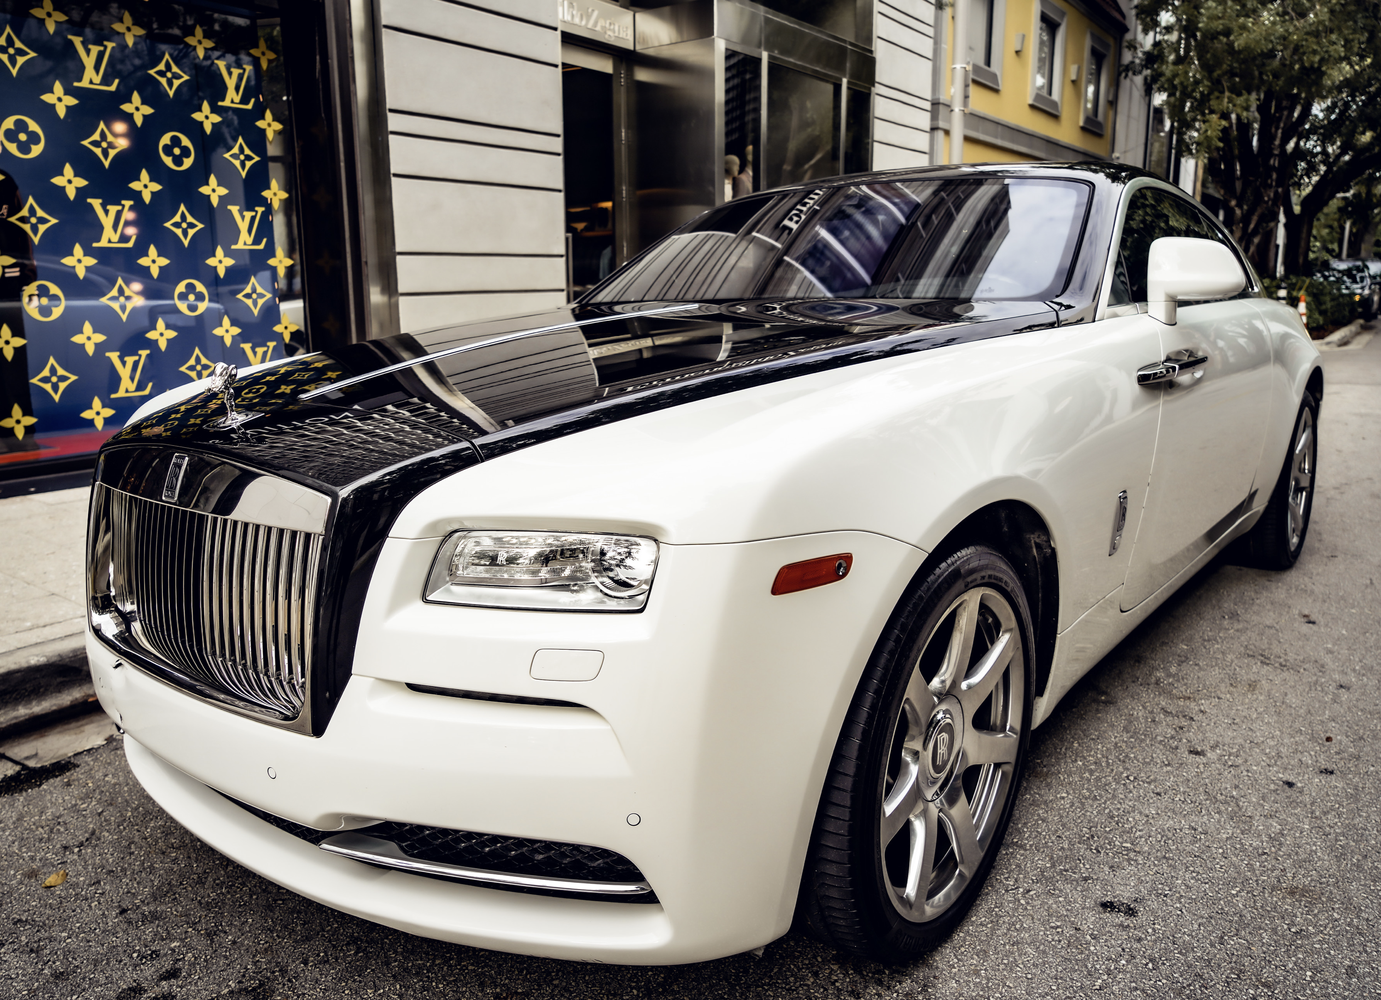 Image #0 of our  Rolls Royce Wraith    In Miami Fort Lauderdale Palm Beach South Florida